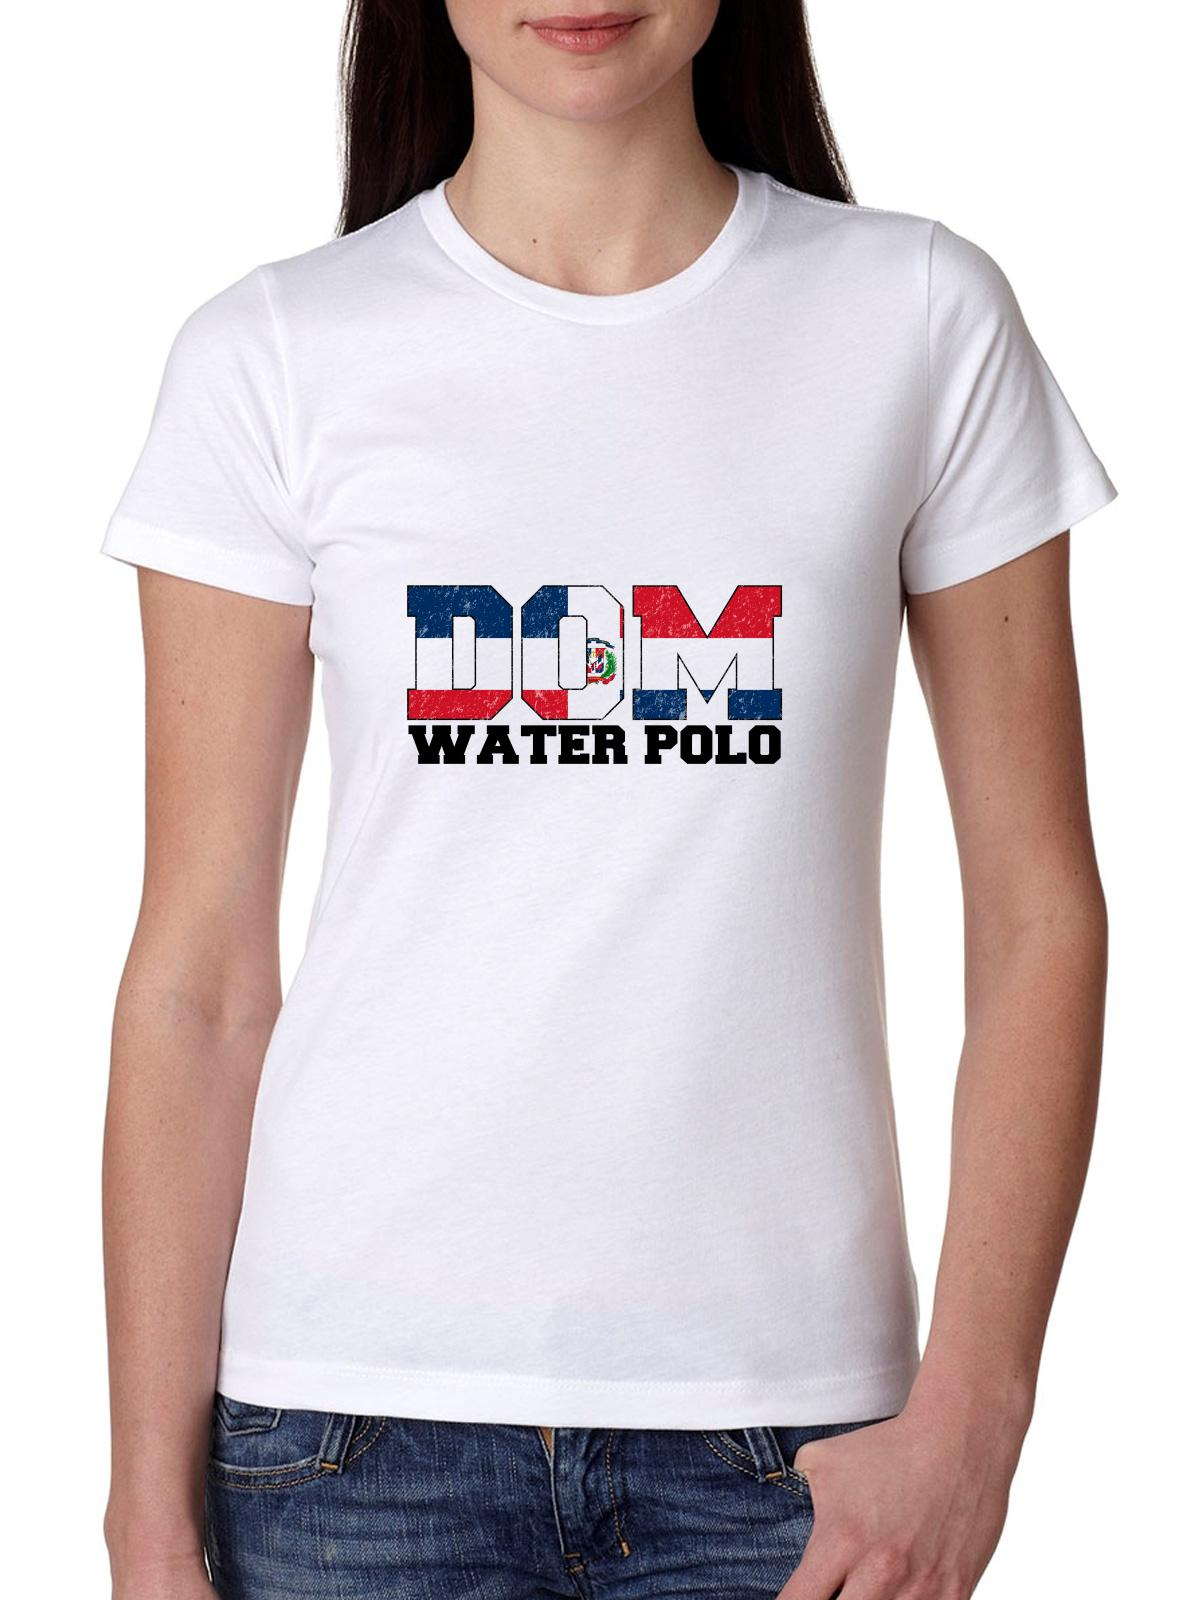 Olympic Water Polo Dominican Republic Women's Cotton T-Shirt by Hollywood Thread